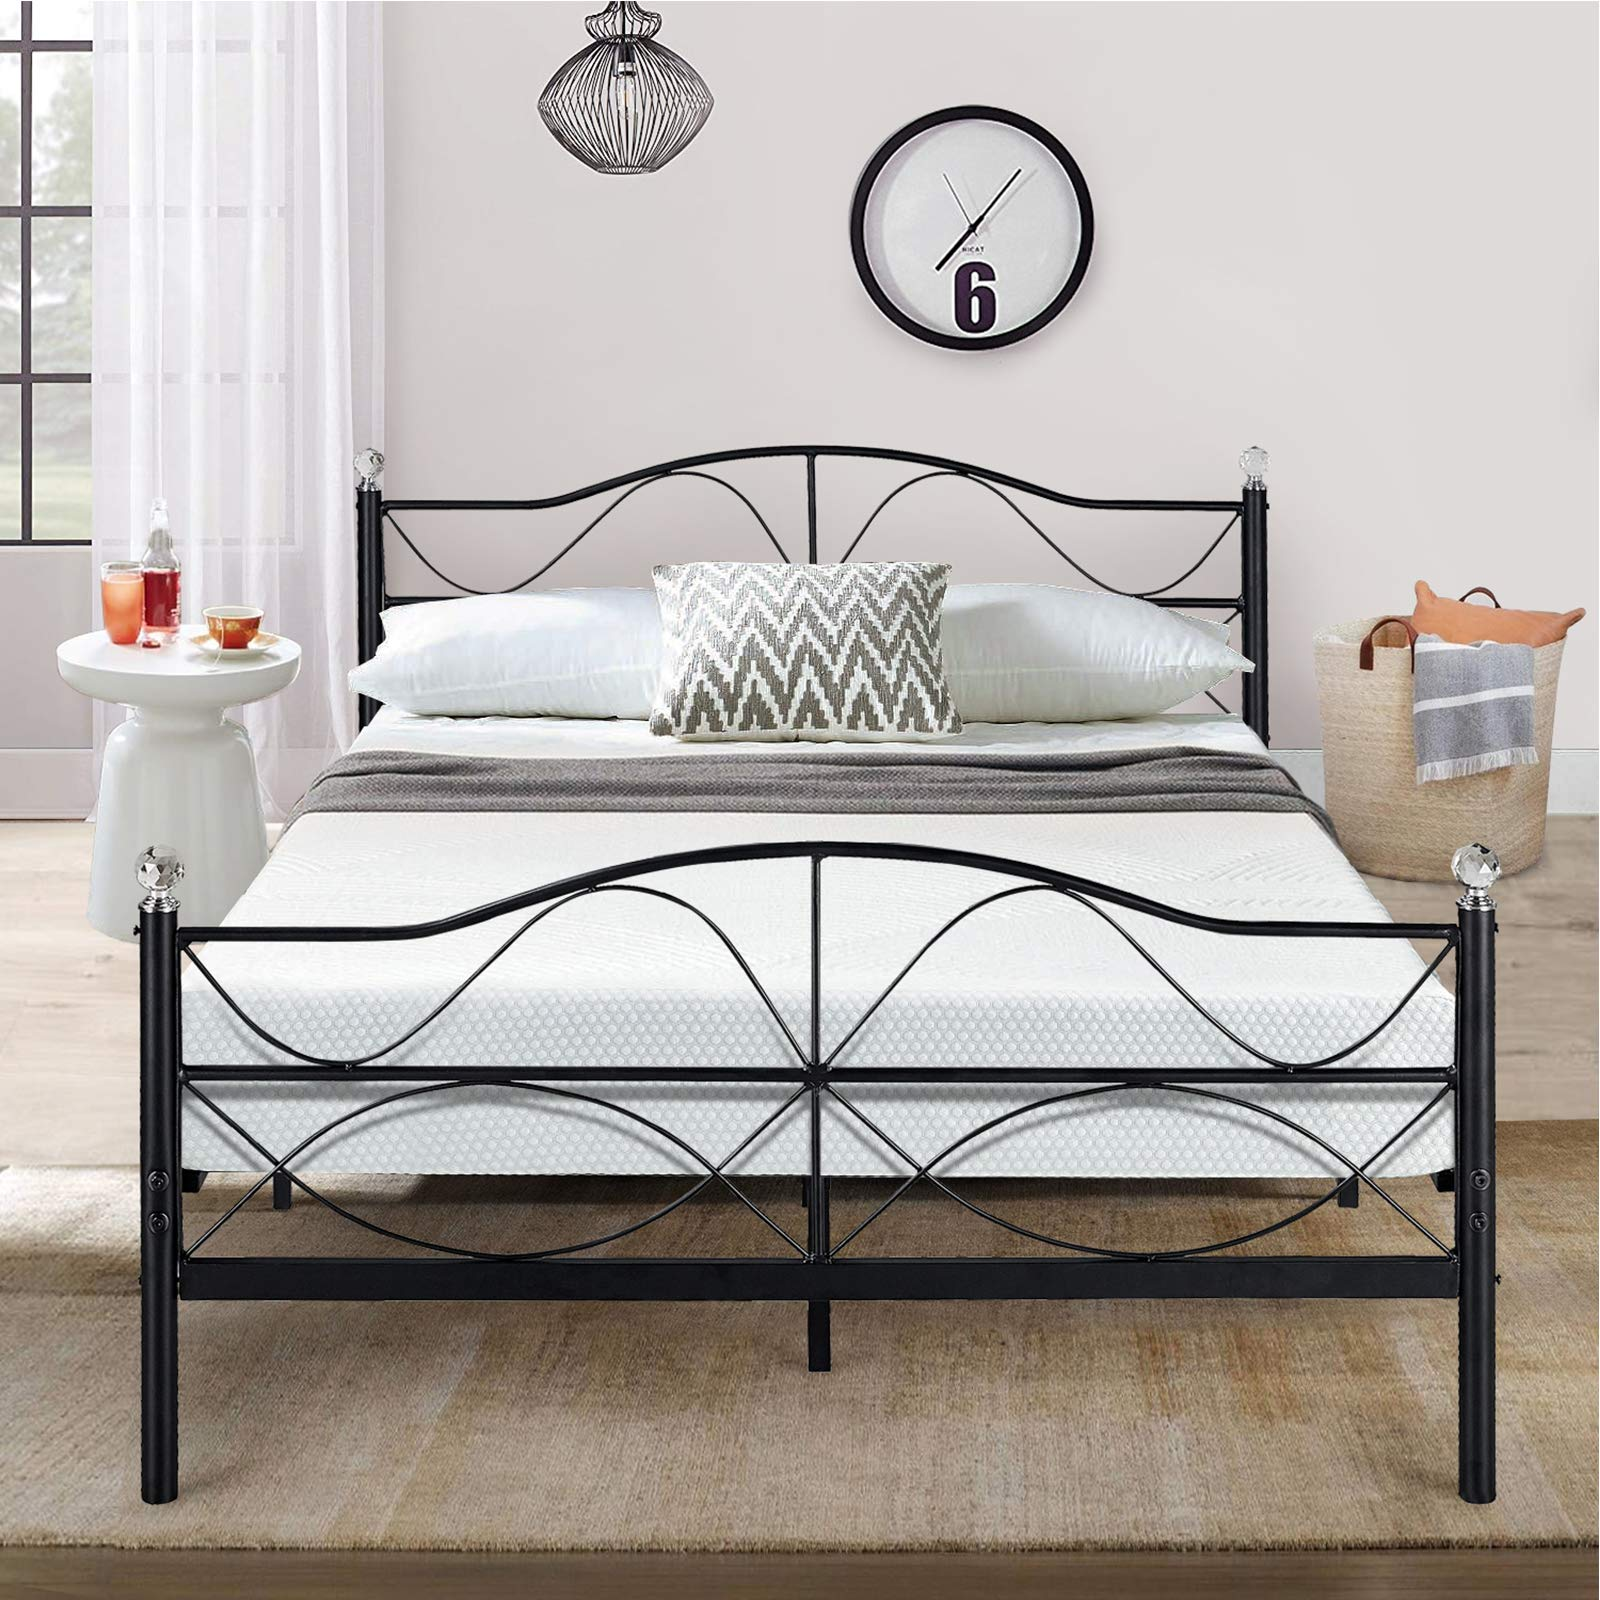 VECELO Premium Queen Size Bed Frame Metal Platform Mattress Foundation/Box Spring Replacement with Headboard, Deluxe Crystal Ball Stylish,